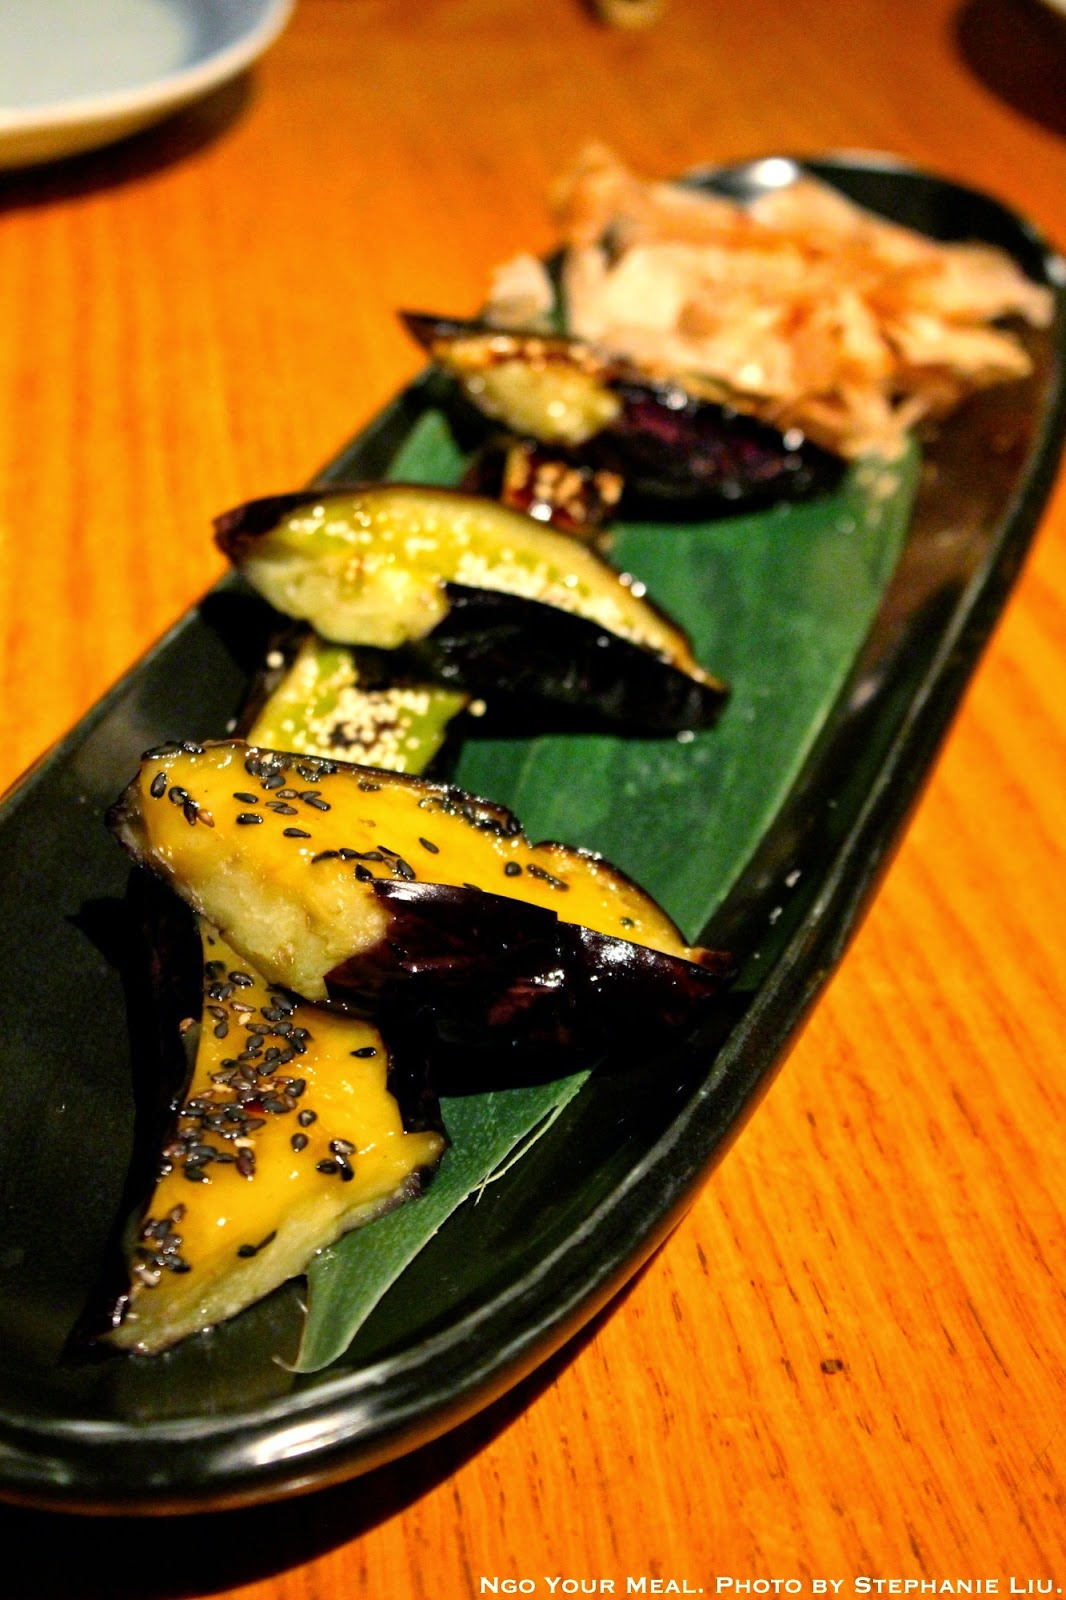 Sanshoku Nasu Dengaku: Grilled Japanese Eggplants Served with Three Kinds of Miso (Eggyolk, Spinach, and Sweet Red) at Sakagura